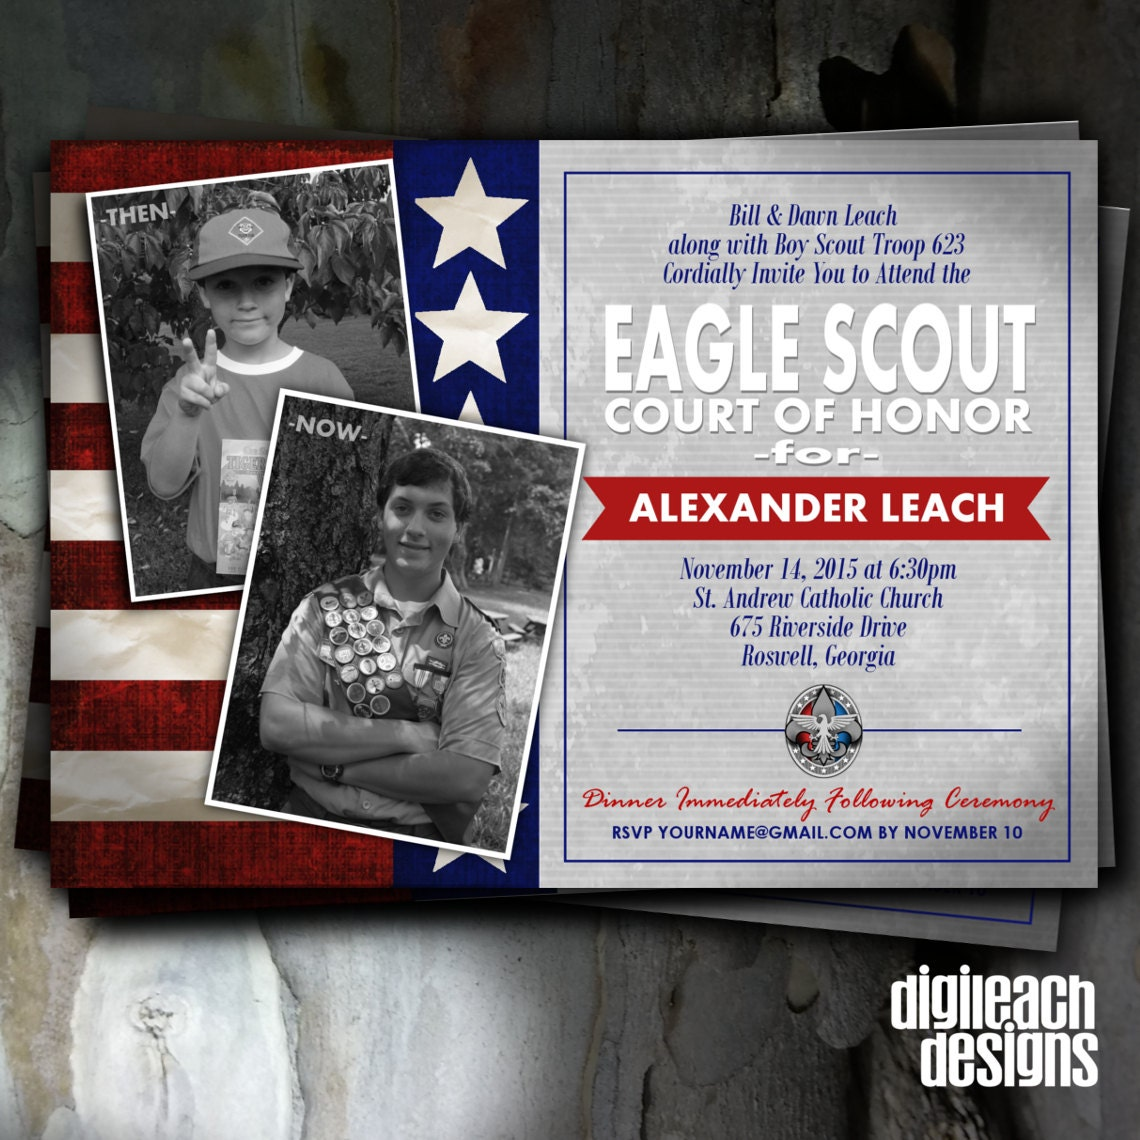 Eagle Scout Court of Honor Invitation: Flag Then and Now